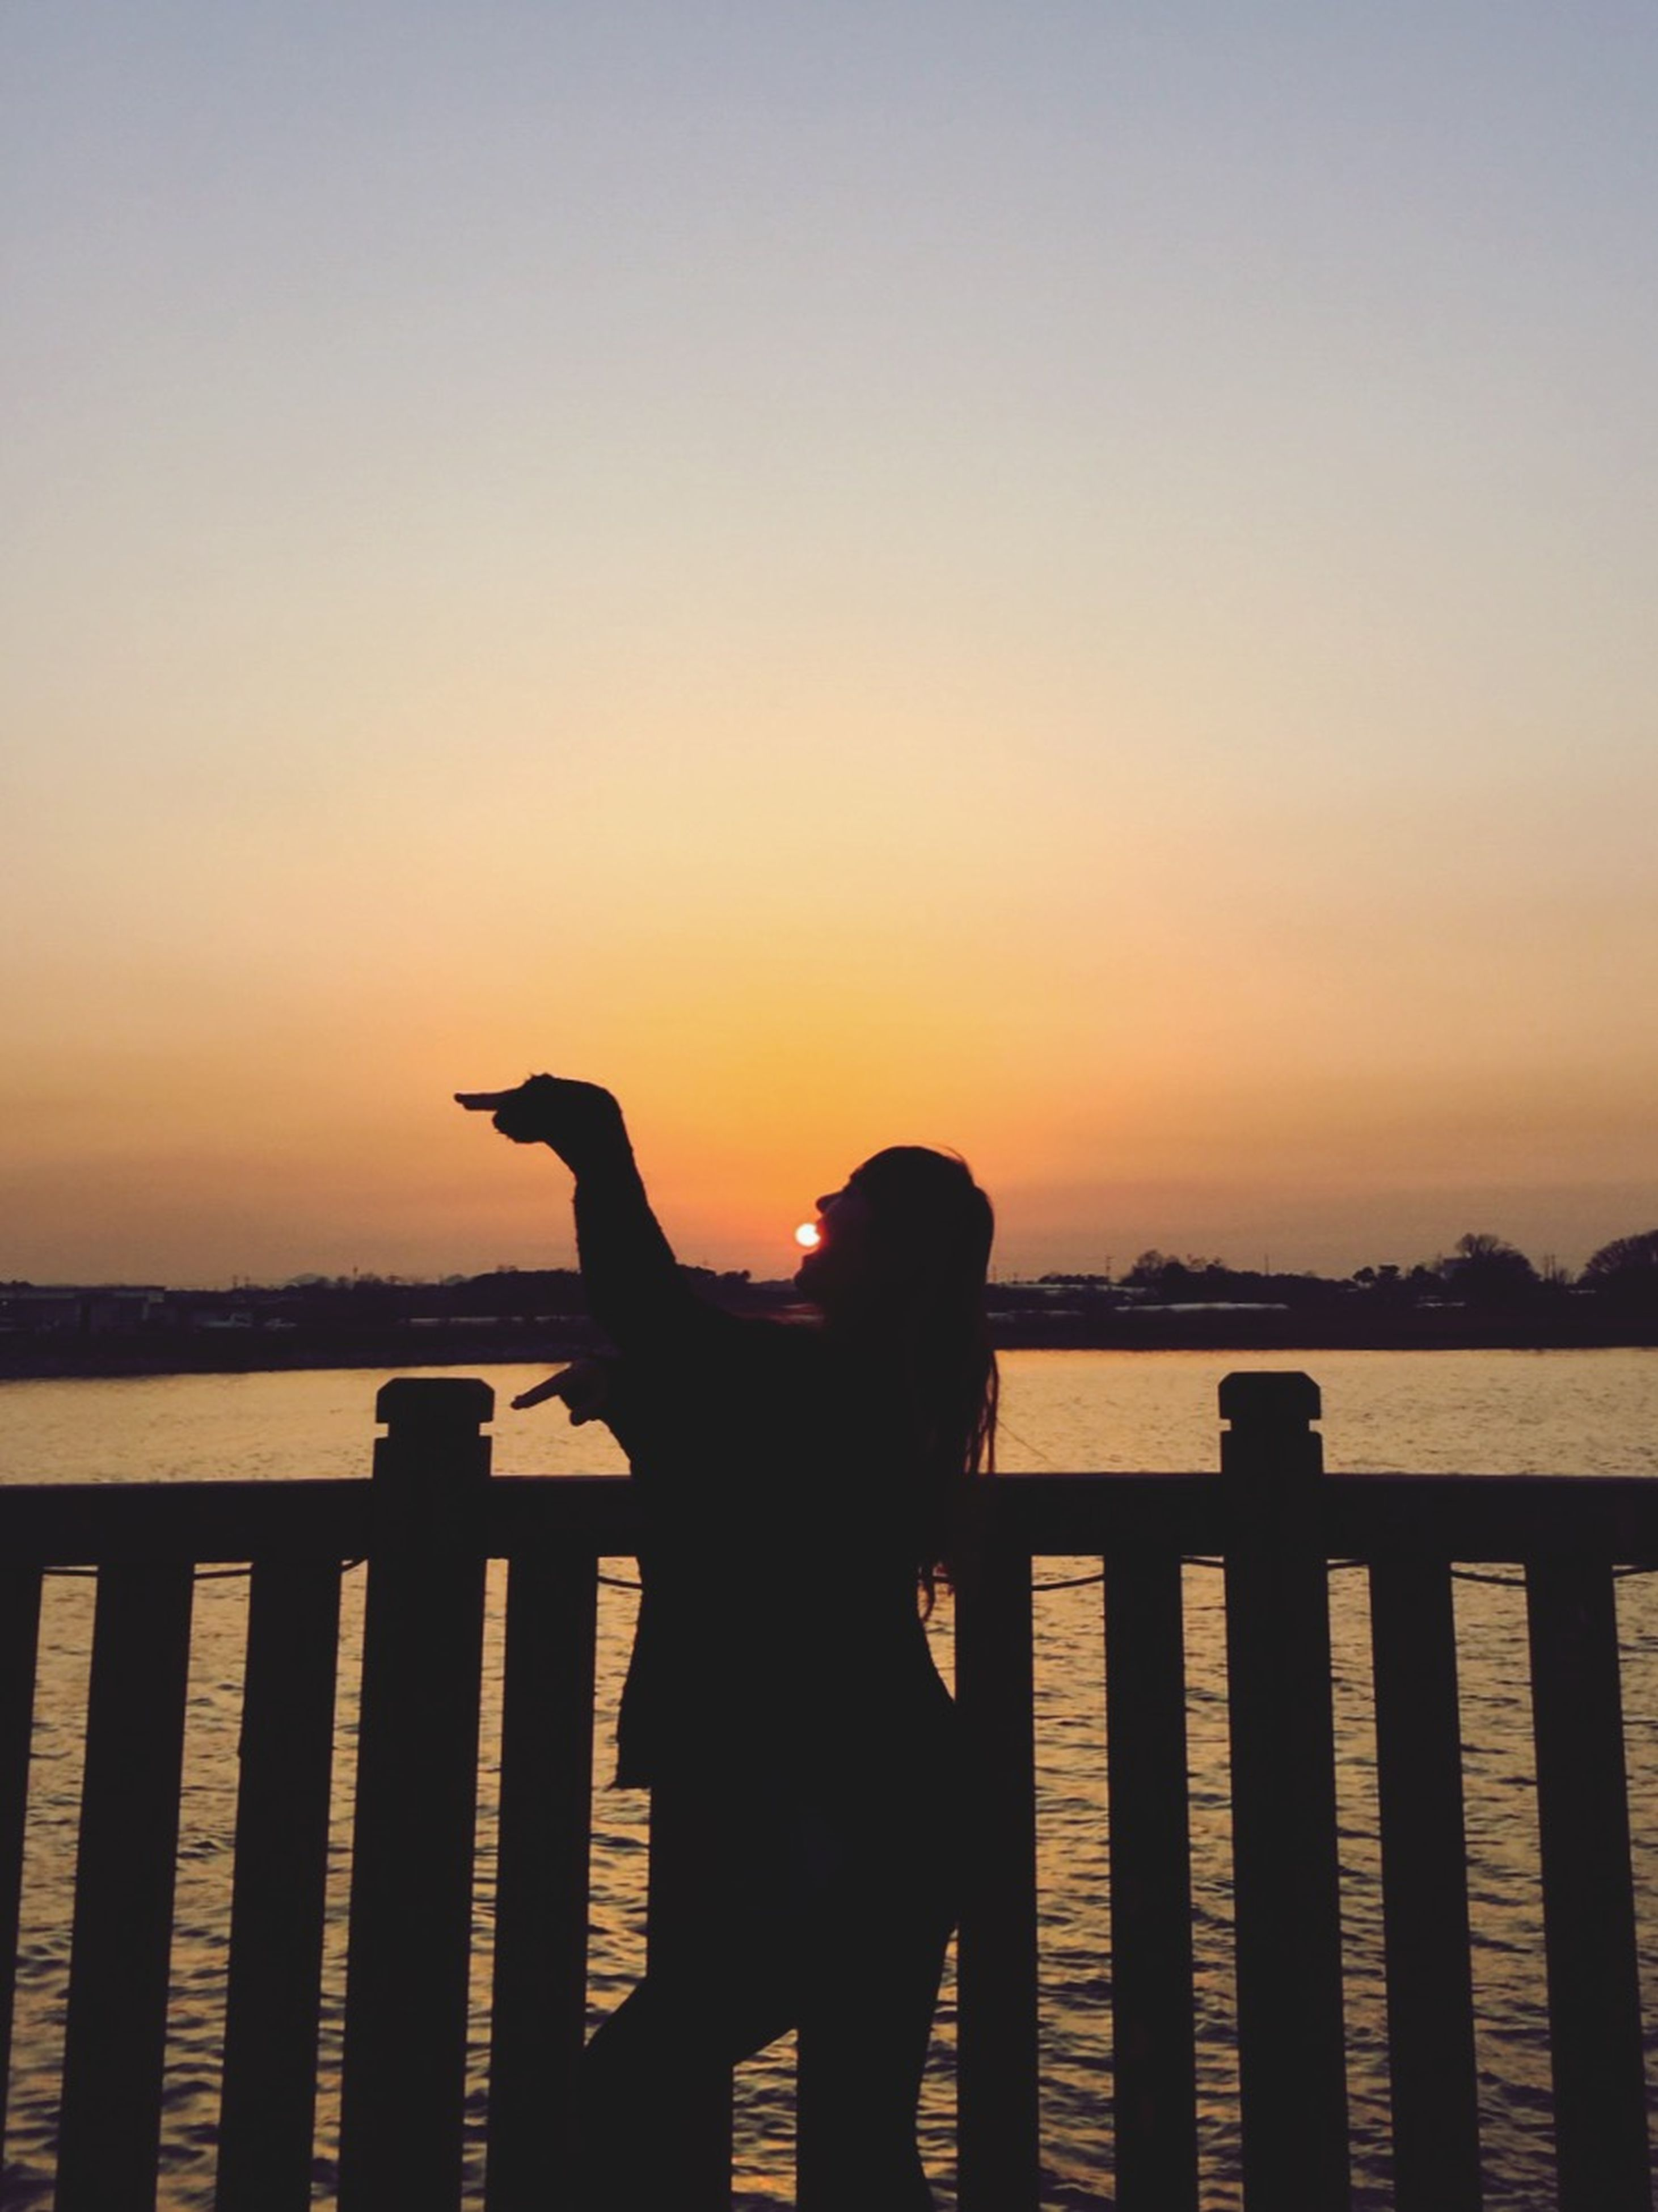 sunset, silhouette, water, copy space, clear sky, one person, orange color, tranquility, tranquil scene, sky, sea, animal themes, nature, one animal, standing, lake, scenics, beauty in nature, side view, idyllic